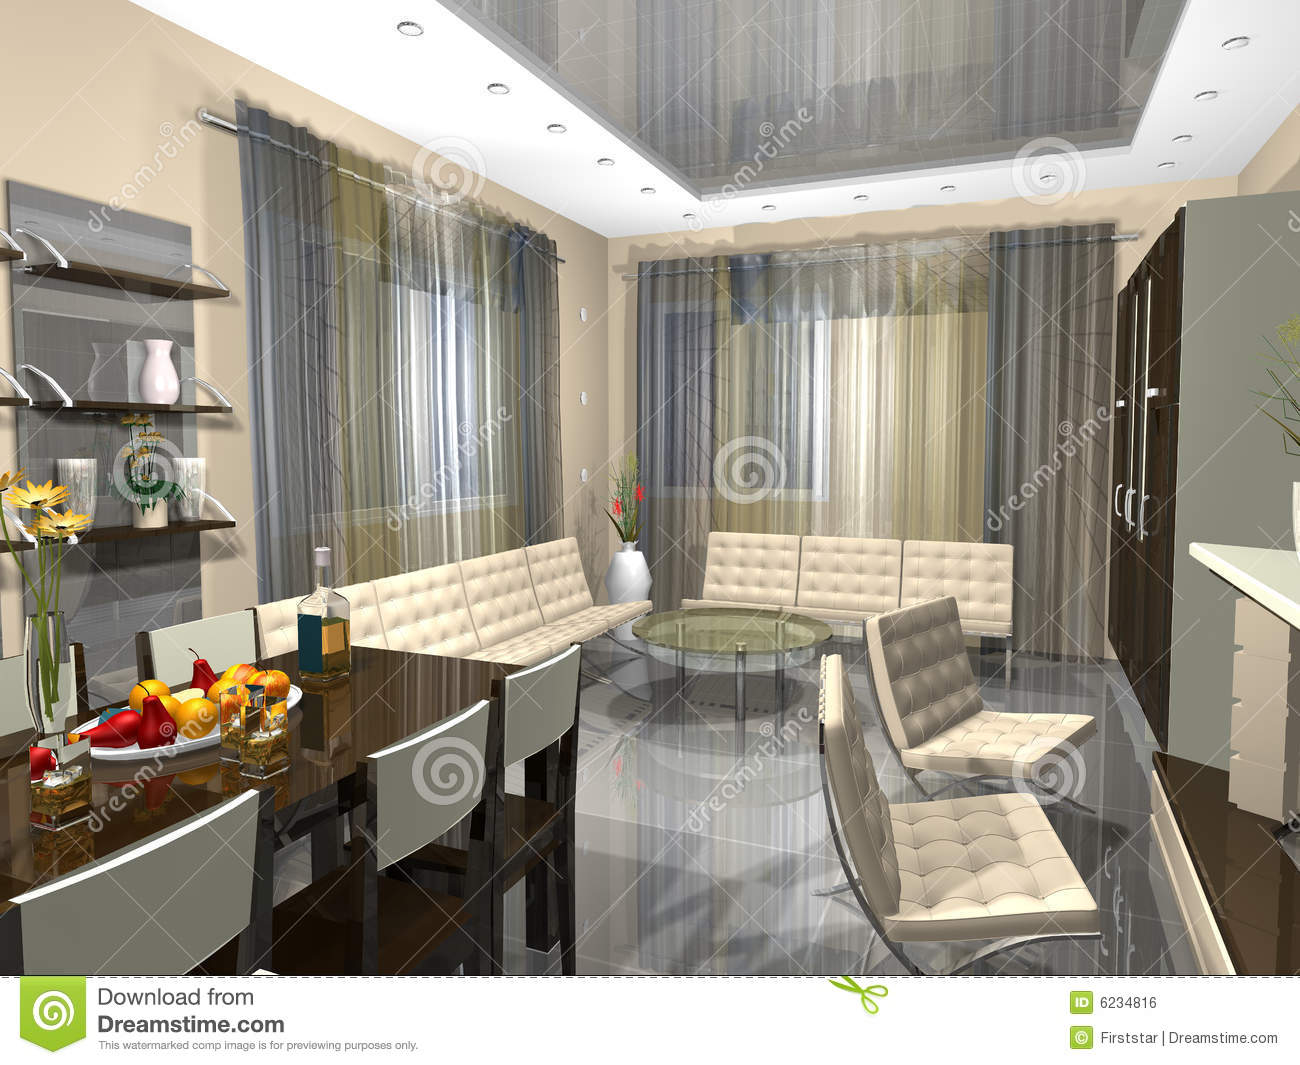 3dmax Interior Of A Drawing Room Stock Illustration Illustration Of Easy Internal 6234816